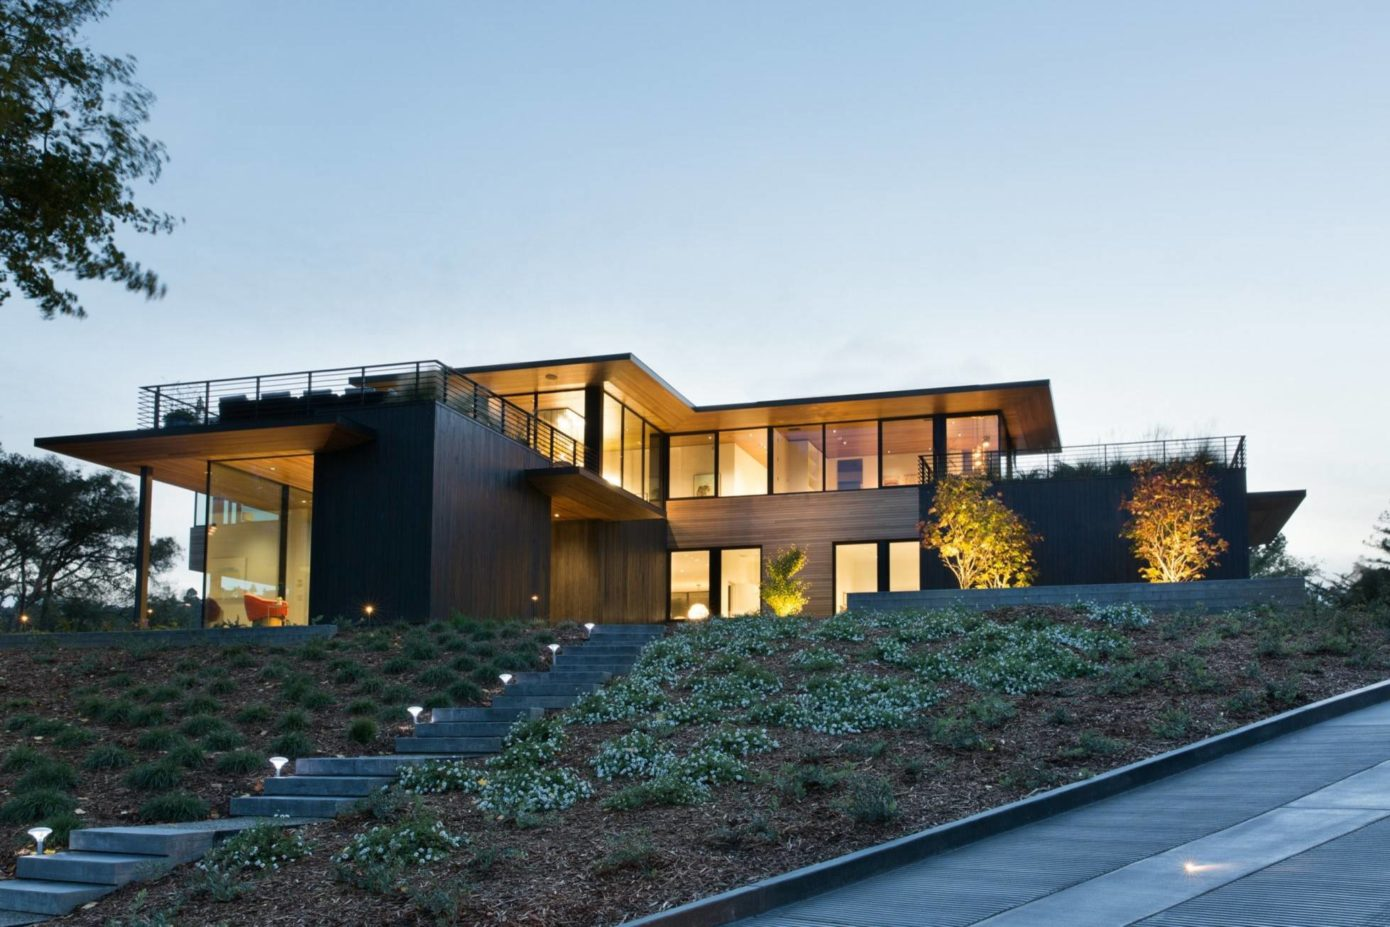 002 House Mill Valley Michael Rex Architects Homeadore